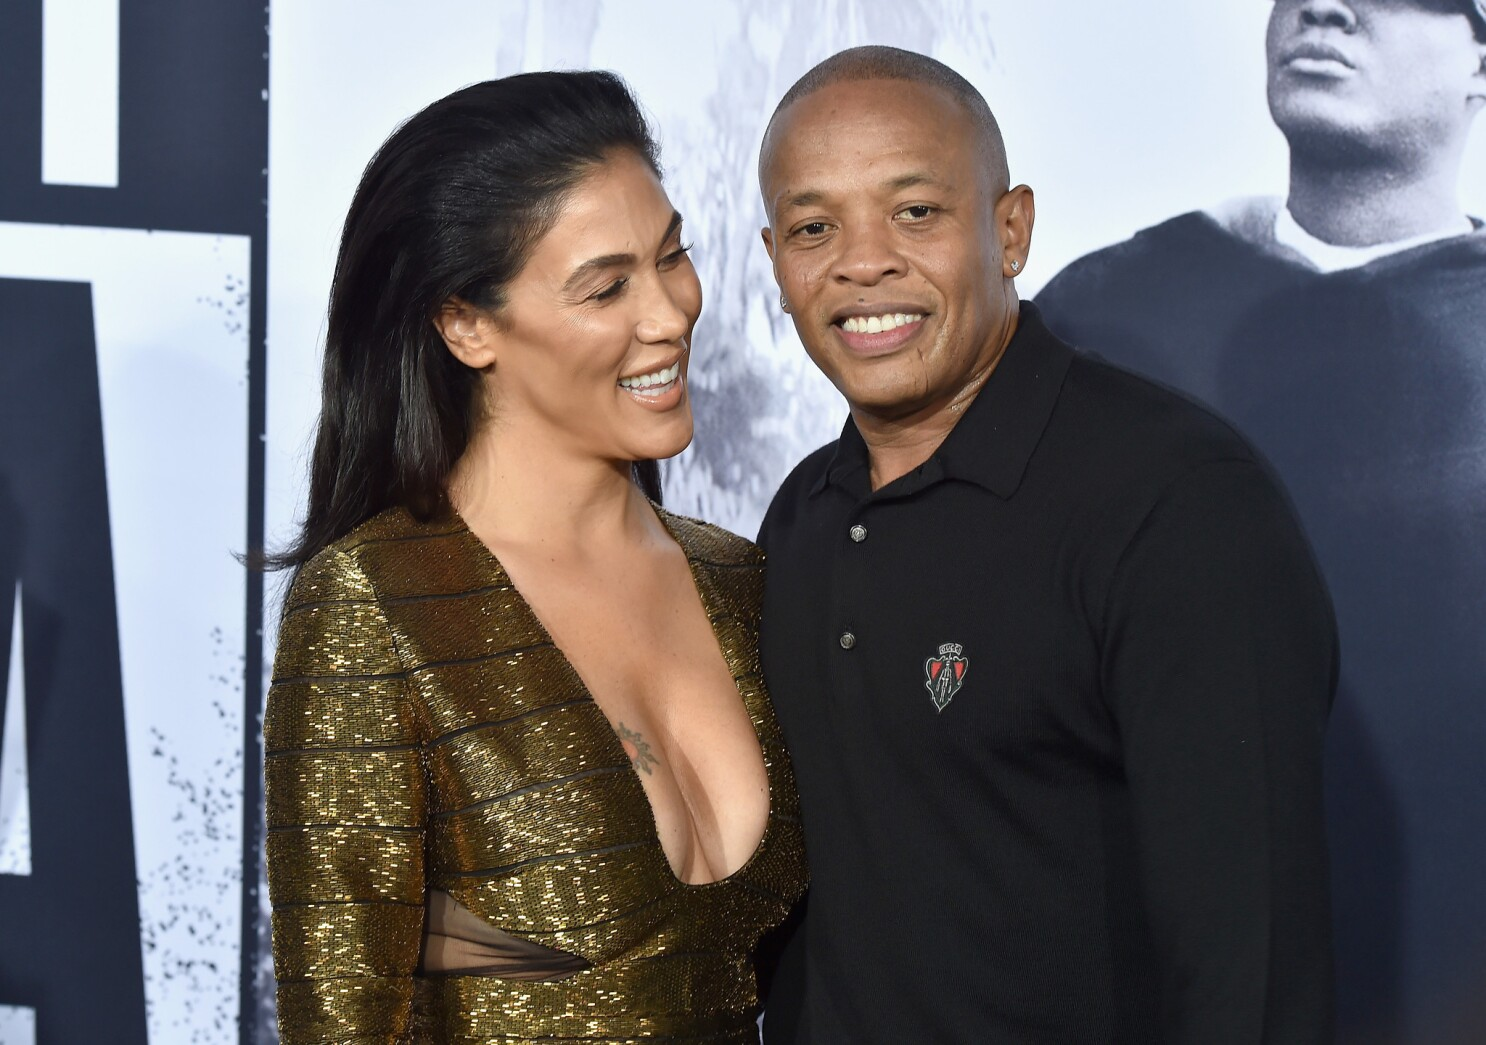 Dr Dre's wife, Nicole claims he secretly transferred his stage name and other assets to avoid losing them in their divorce battle    PEAKVIBEZ